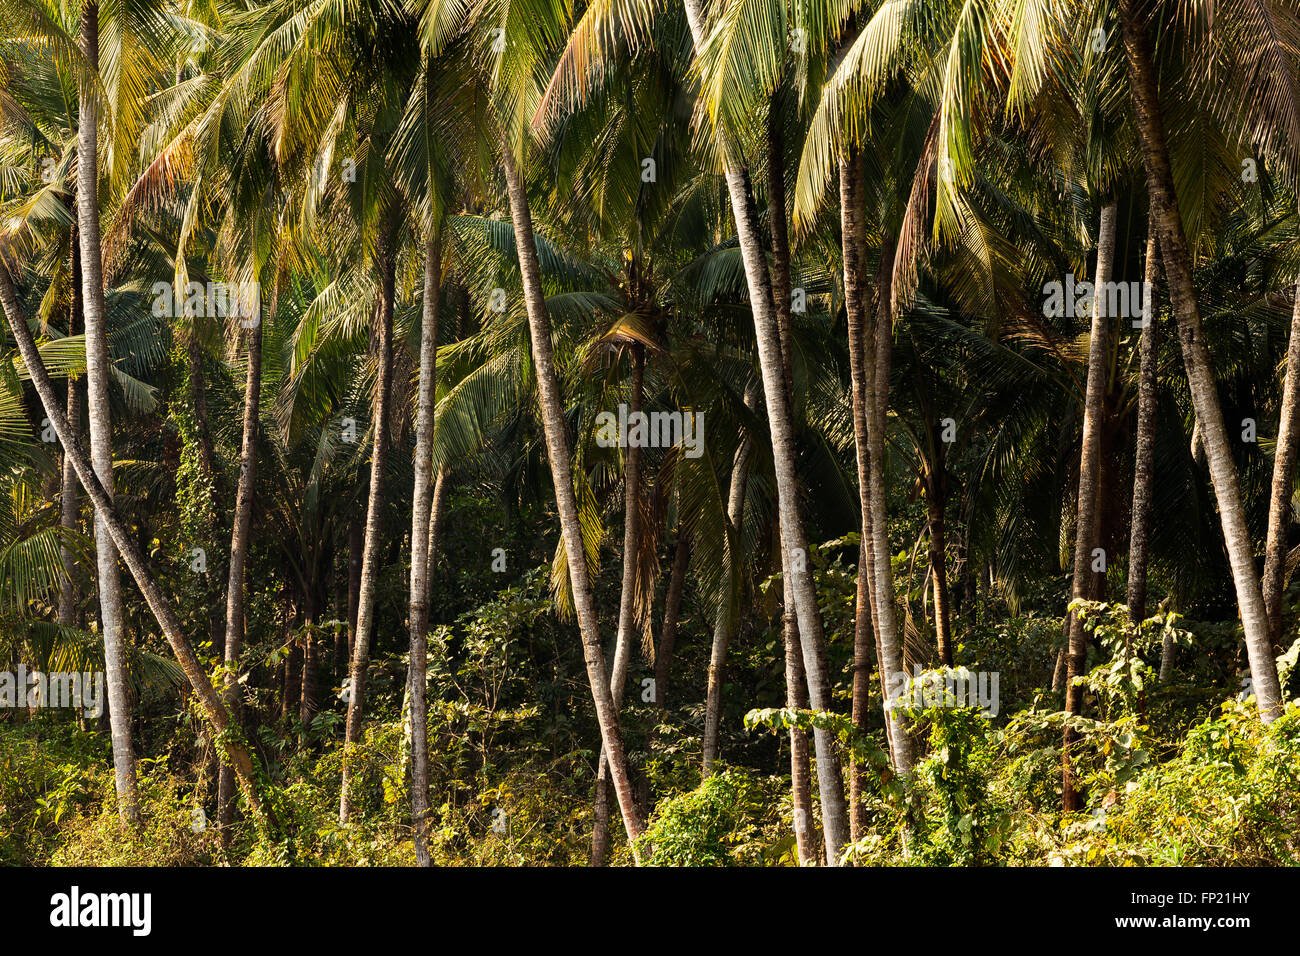 Cocotier jungle Photo Stock